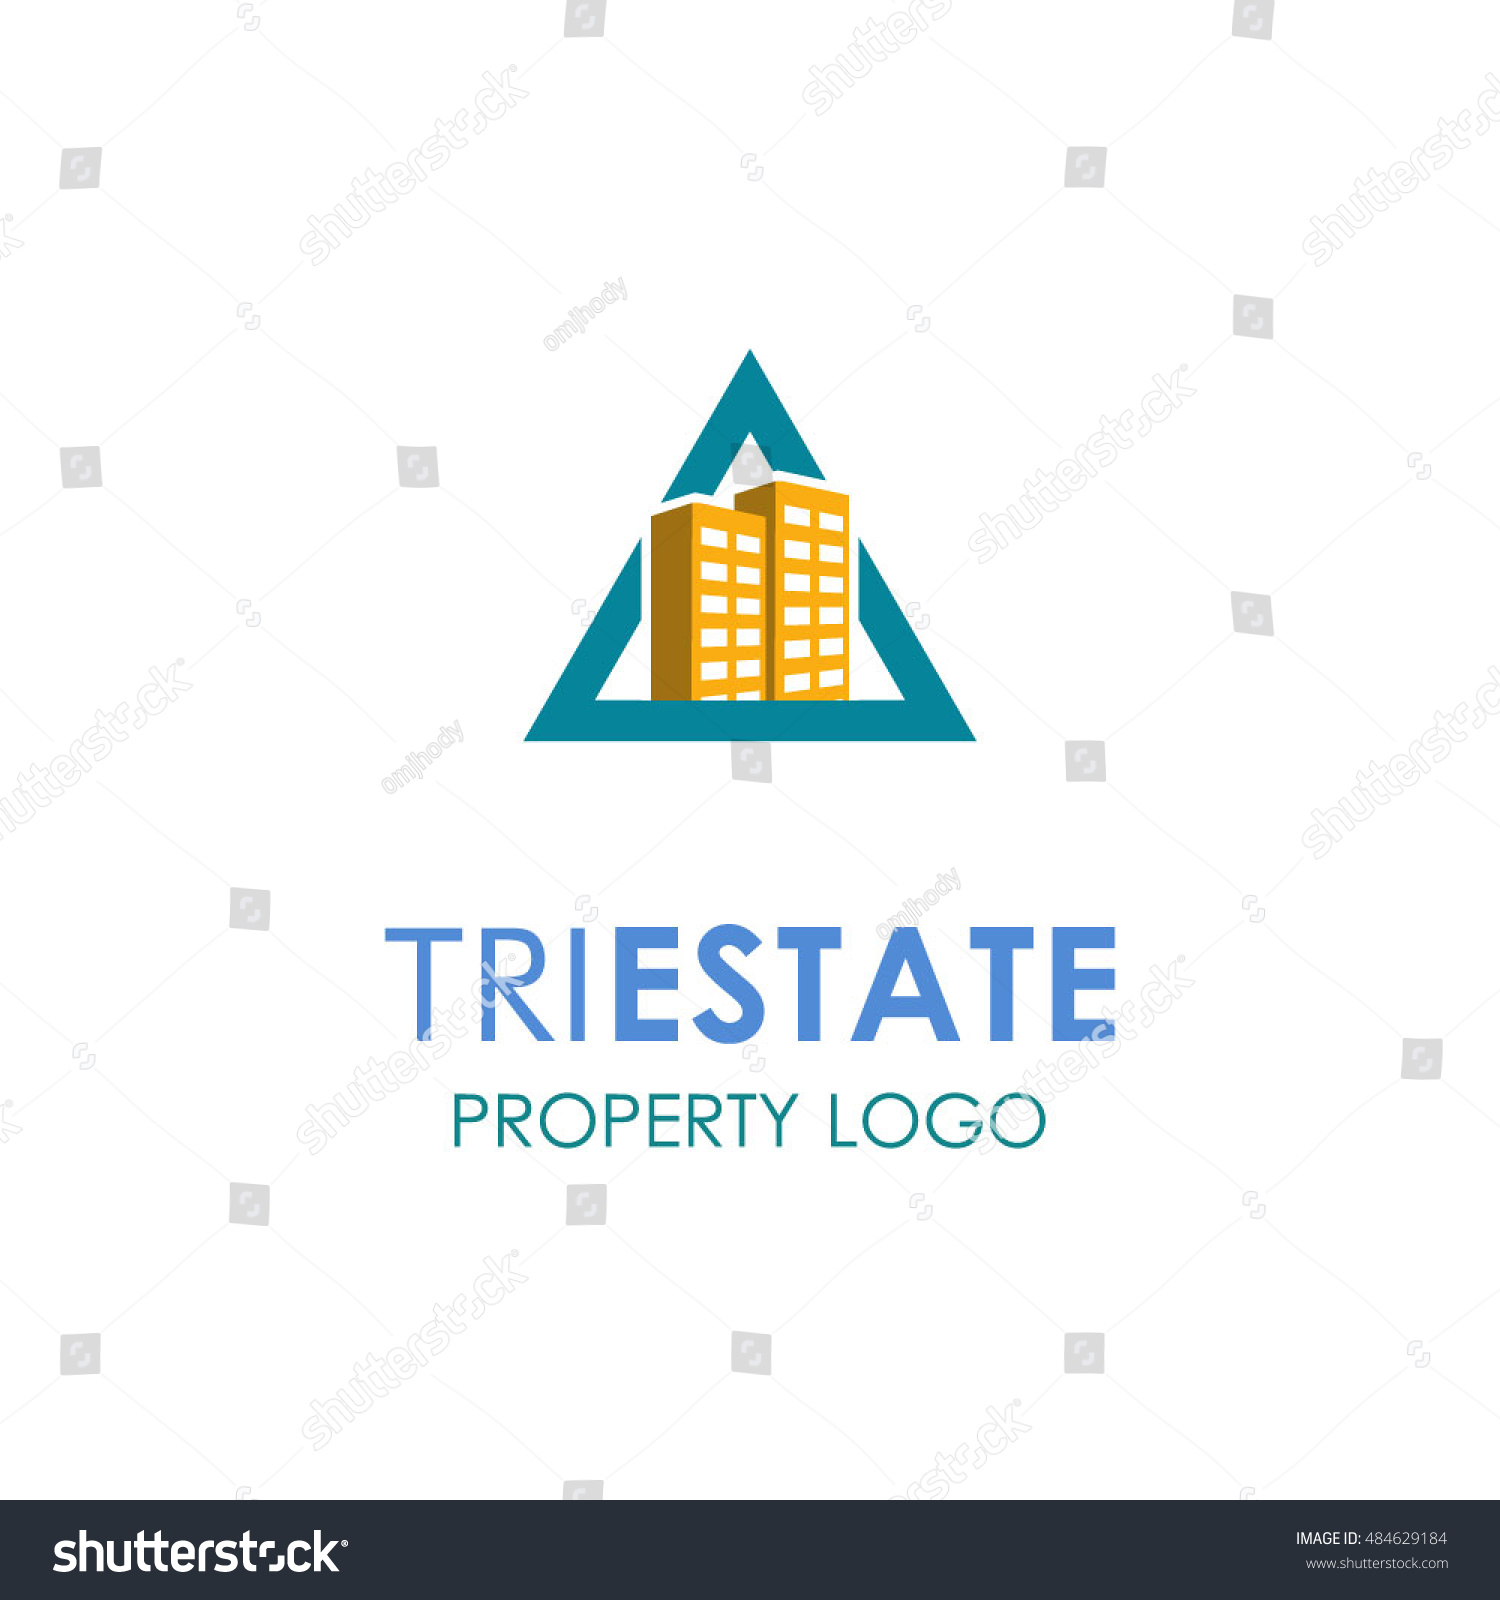 company logos designs logo design ideas for real estate company luxury real estate - Company Logo Design Ideas